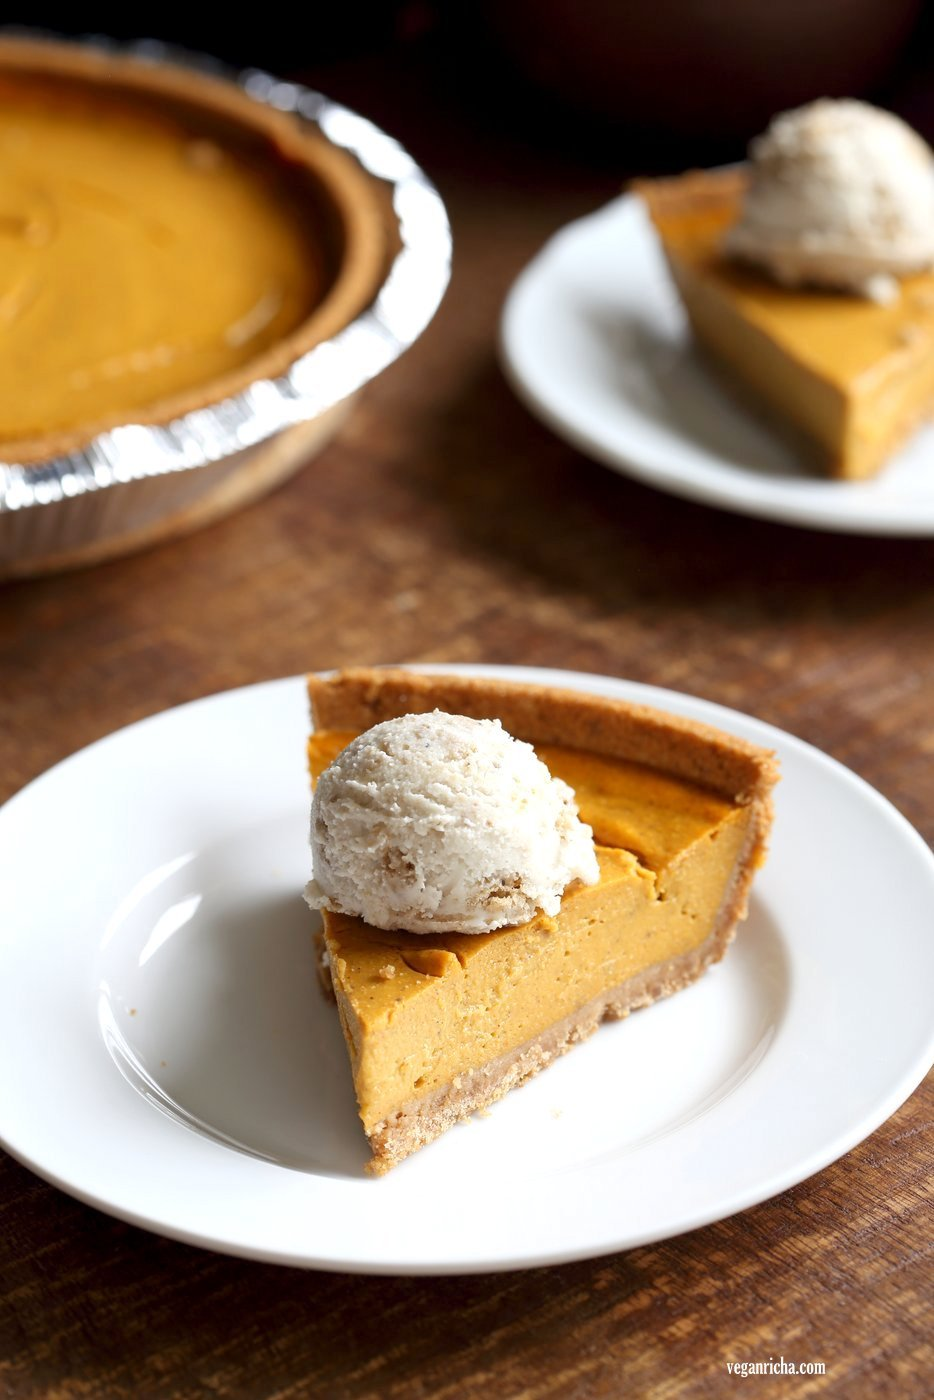 Vegan Pumpkin Cheesecake with graham cracker style crust. Easy Creamy Pumpkin Cheesecake to please everyone. Gluten-free with gluten free crust.#Soyfree #Recipe #vegan #pumpkinheesecake #veganricha | VeganRicha.com